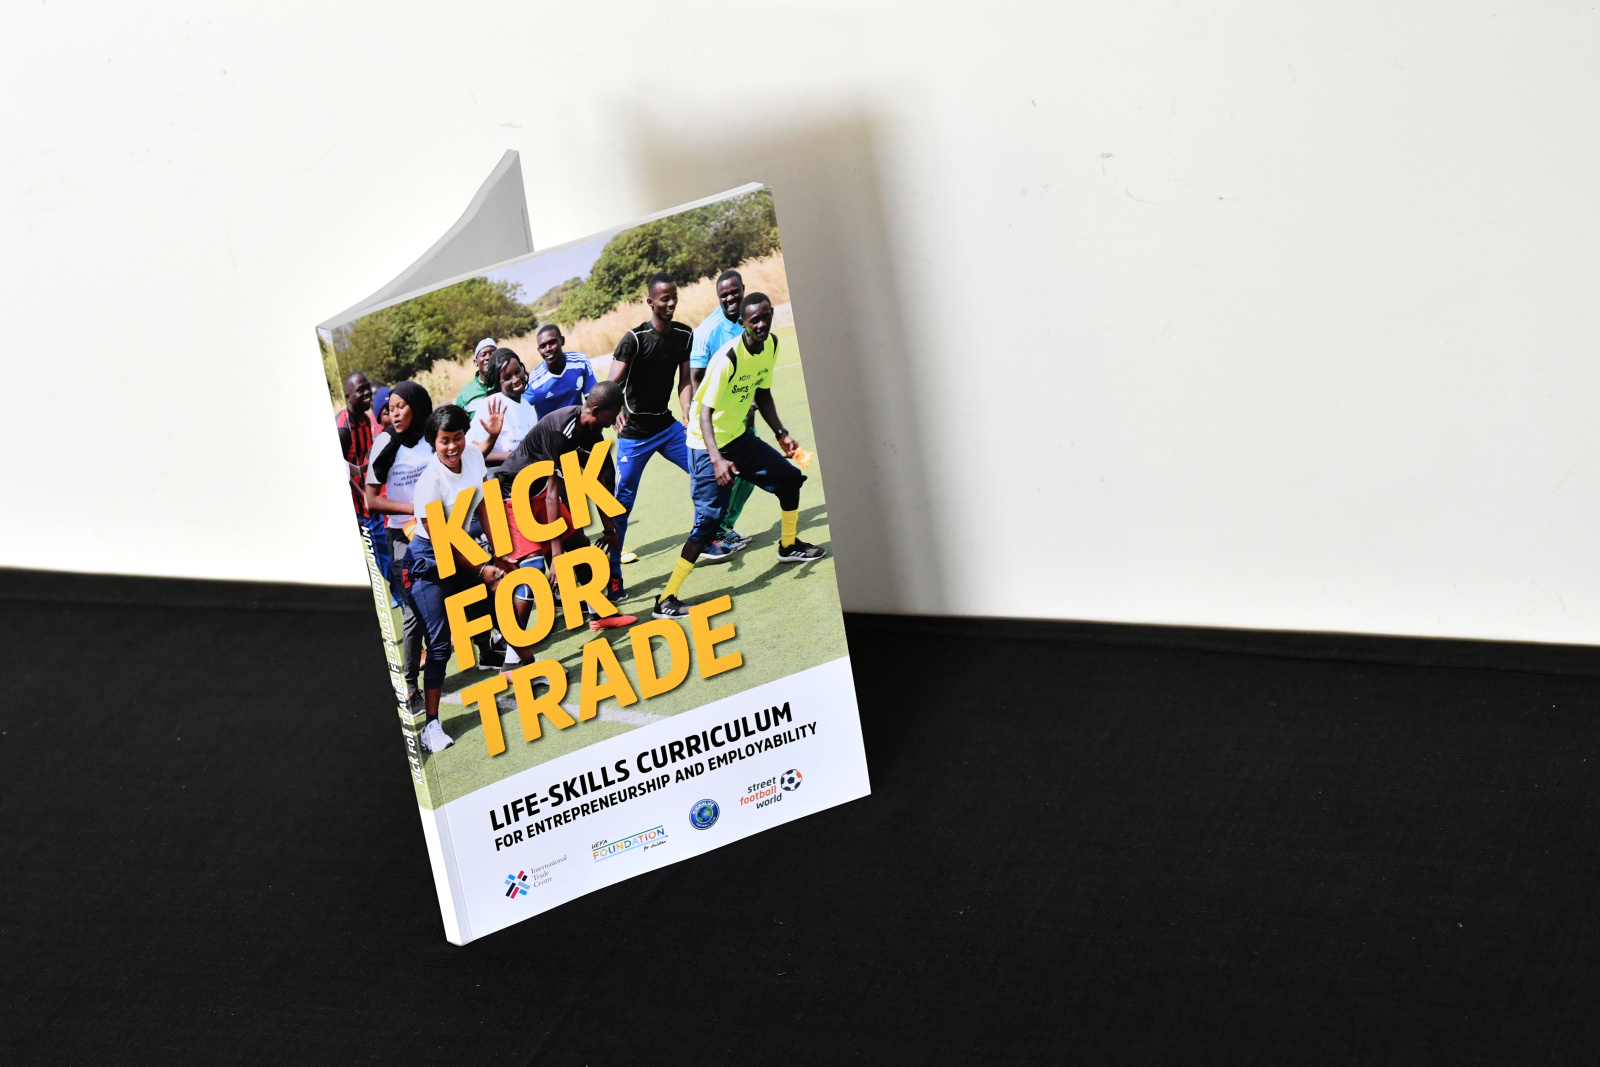 Kick for trade Launch